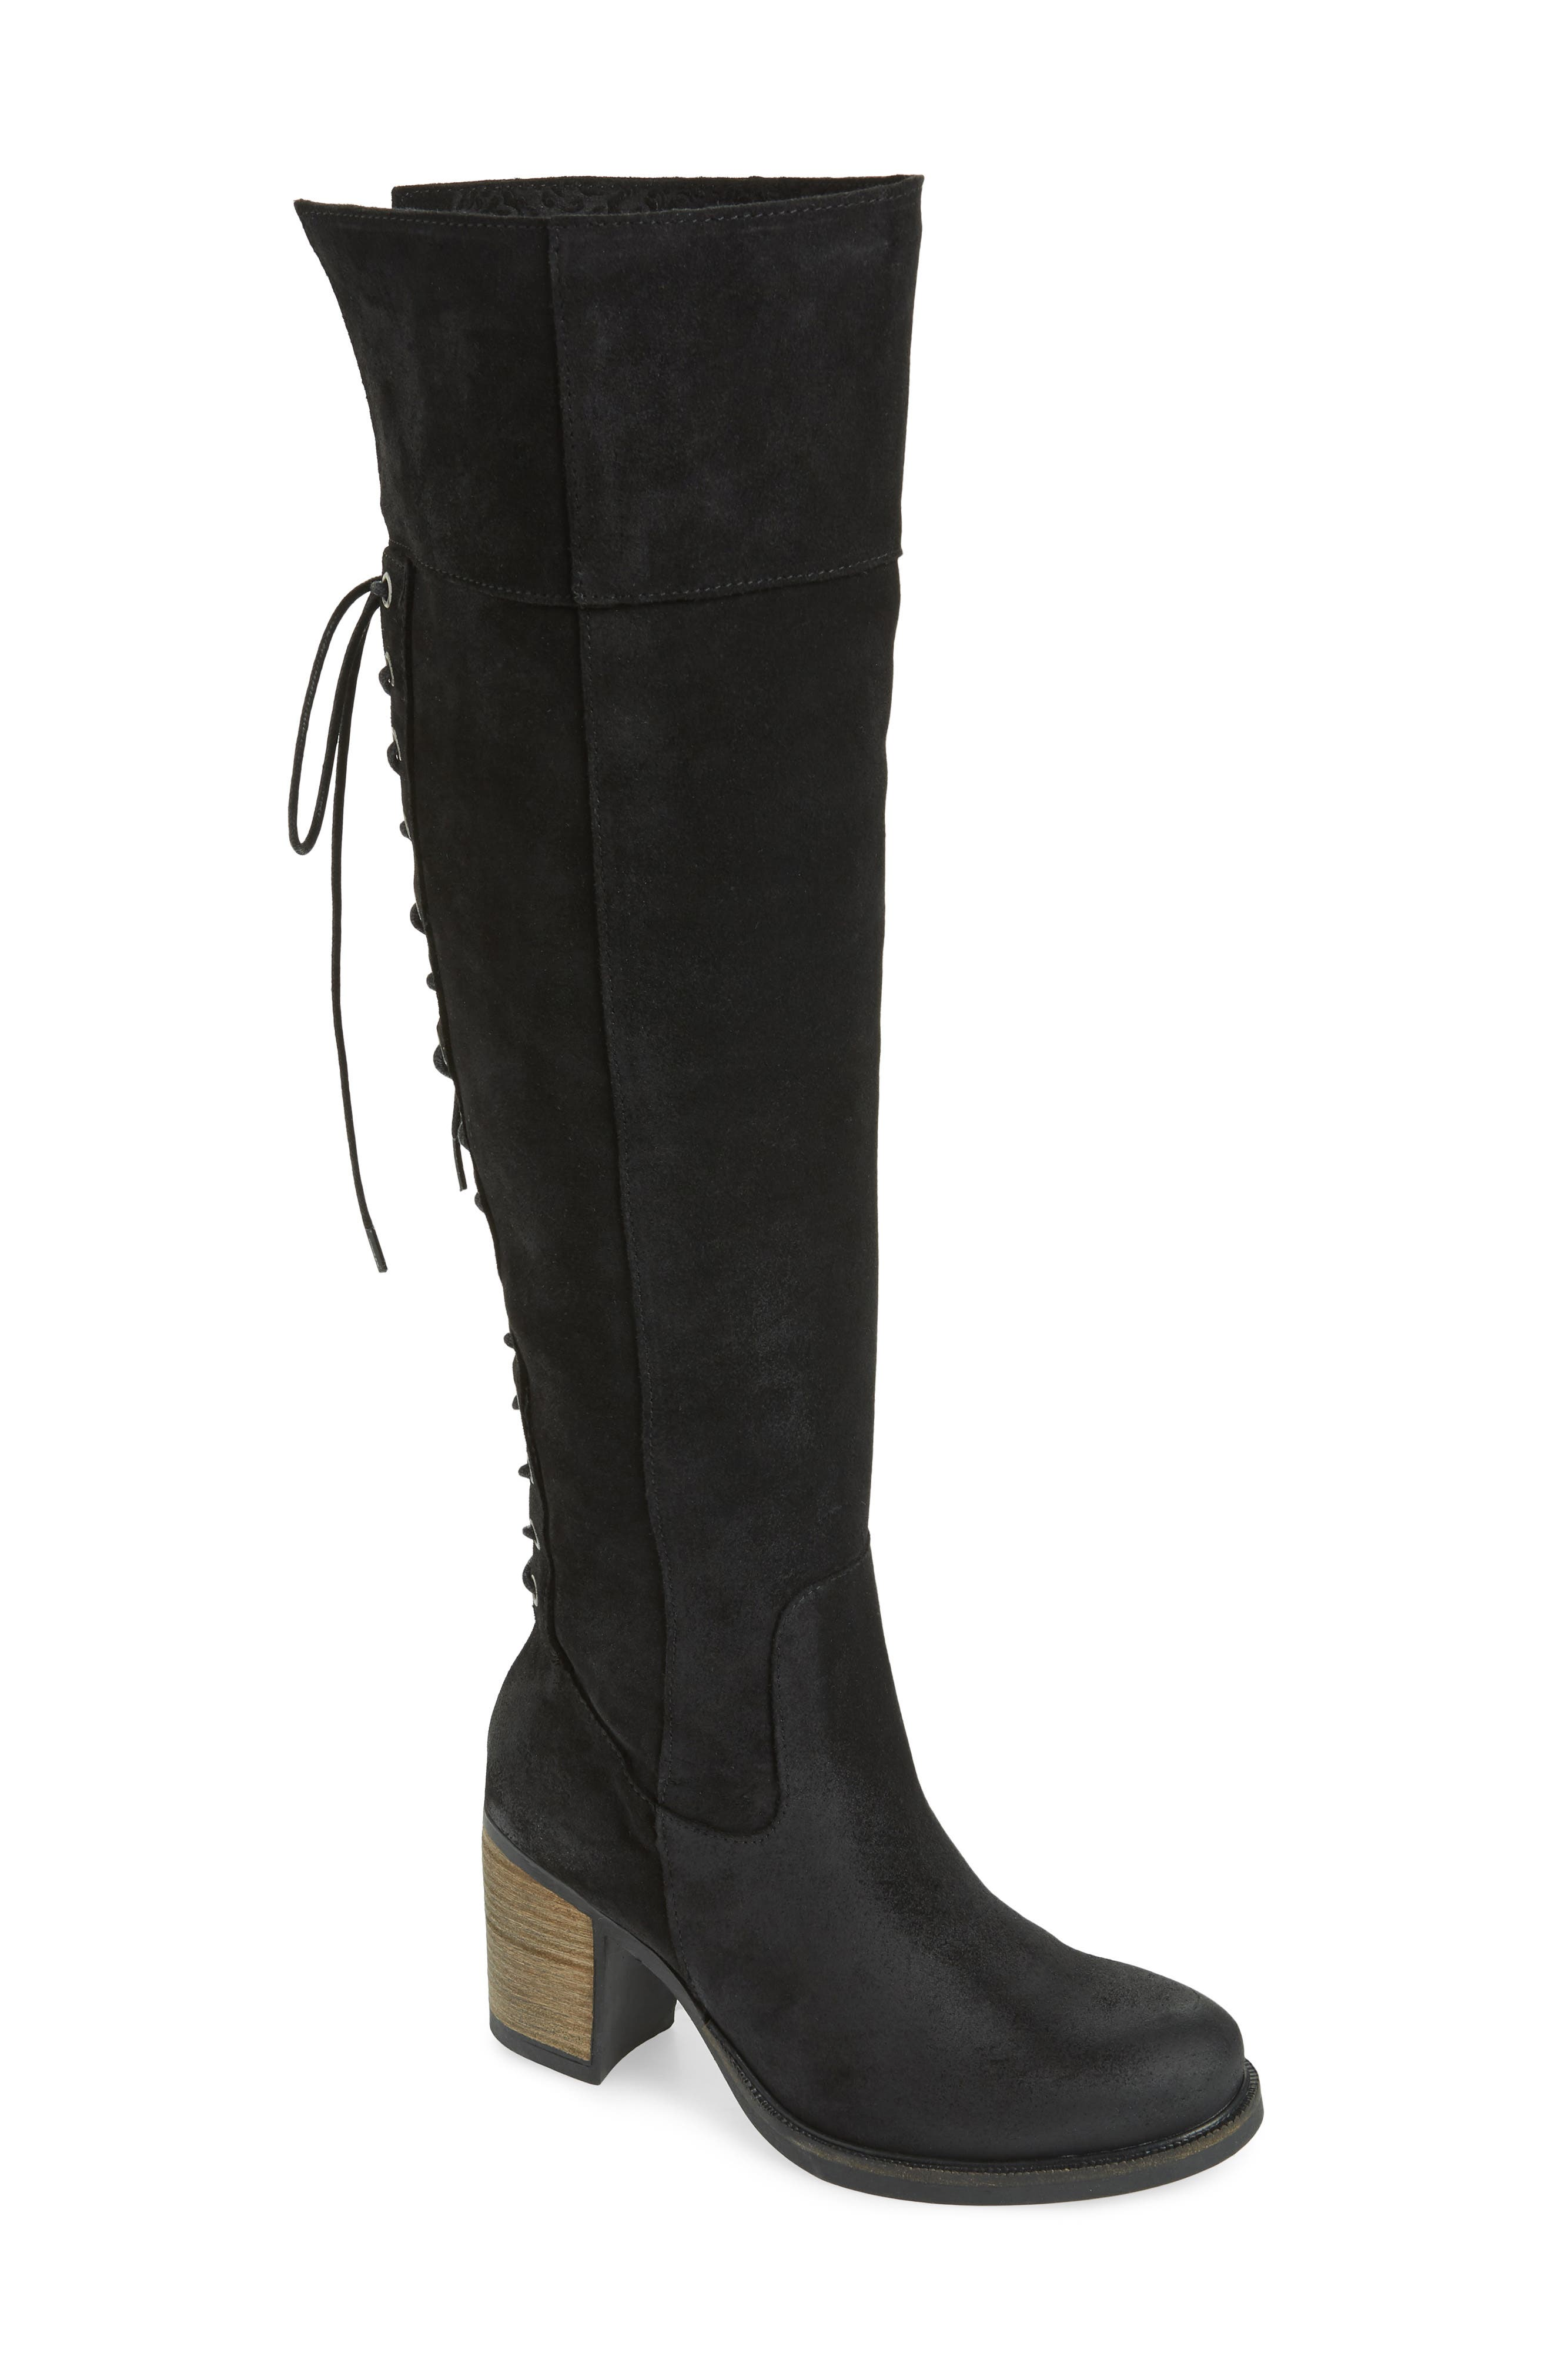 Bond Waterproof Over-the-Knee Boot,                         Main,                         color, BLACK OIL SUEDE